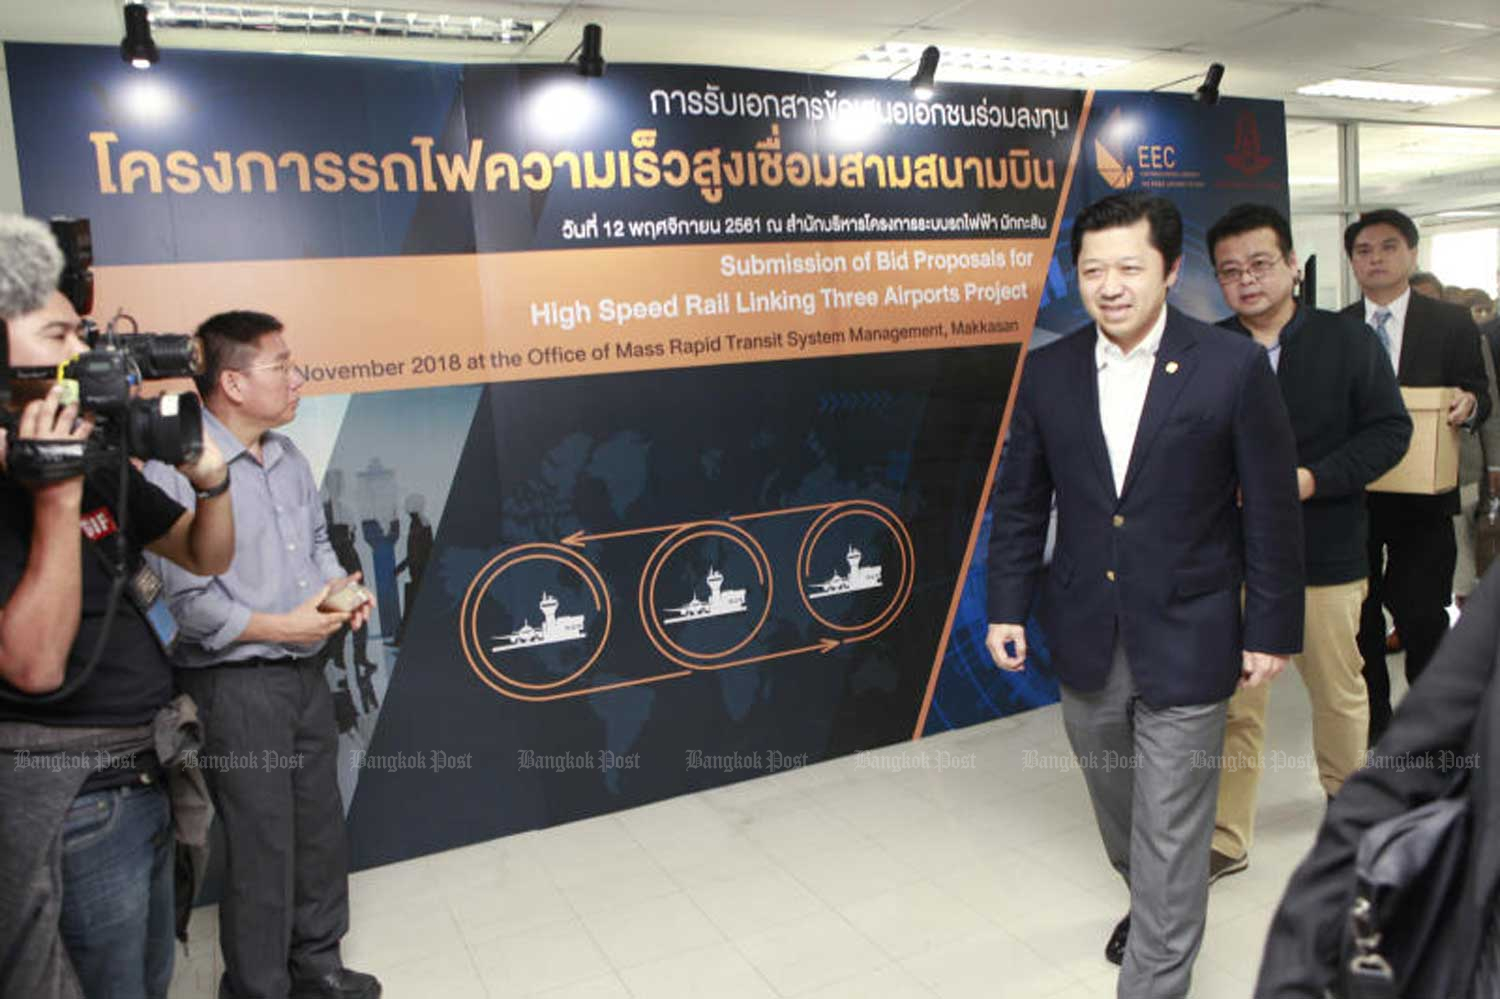 Charoen Pokphand chief executive Suphachai Chearavanont leads his team to submit a bid for a high-speed train project connecting Suvarnabhumi, Don Mueang and U-Tapao airports in November. (File photo by Pornprom Satrabhaya)